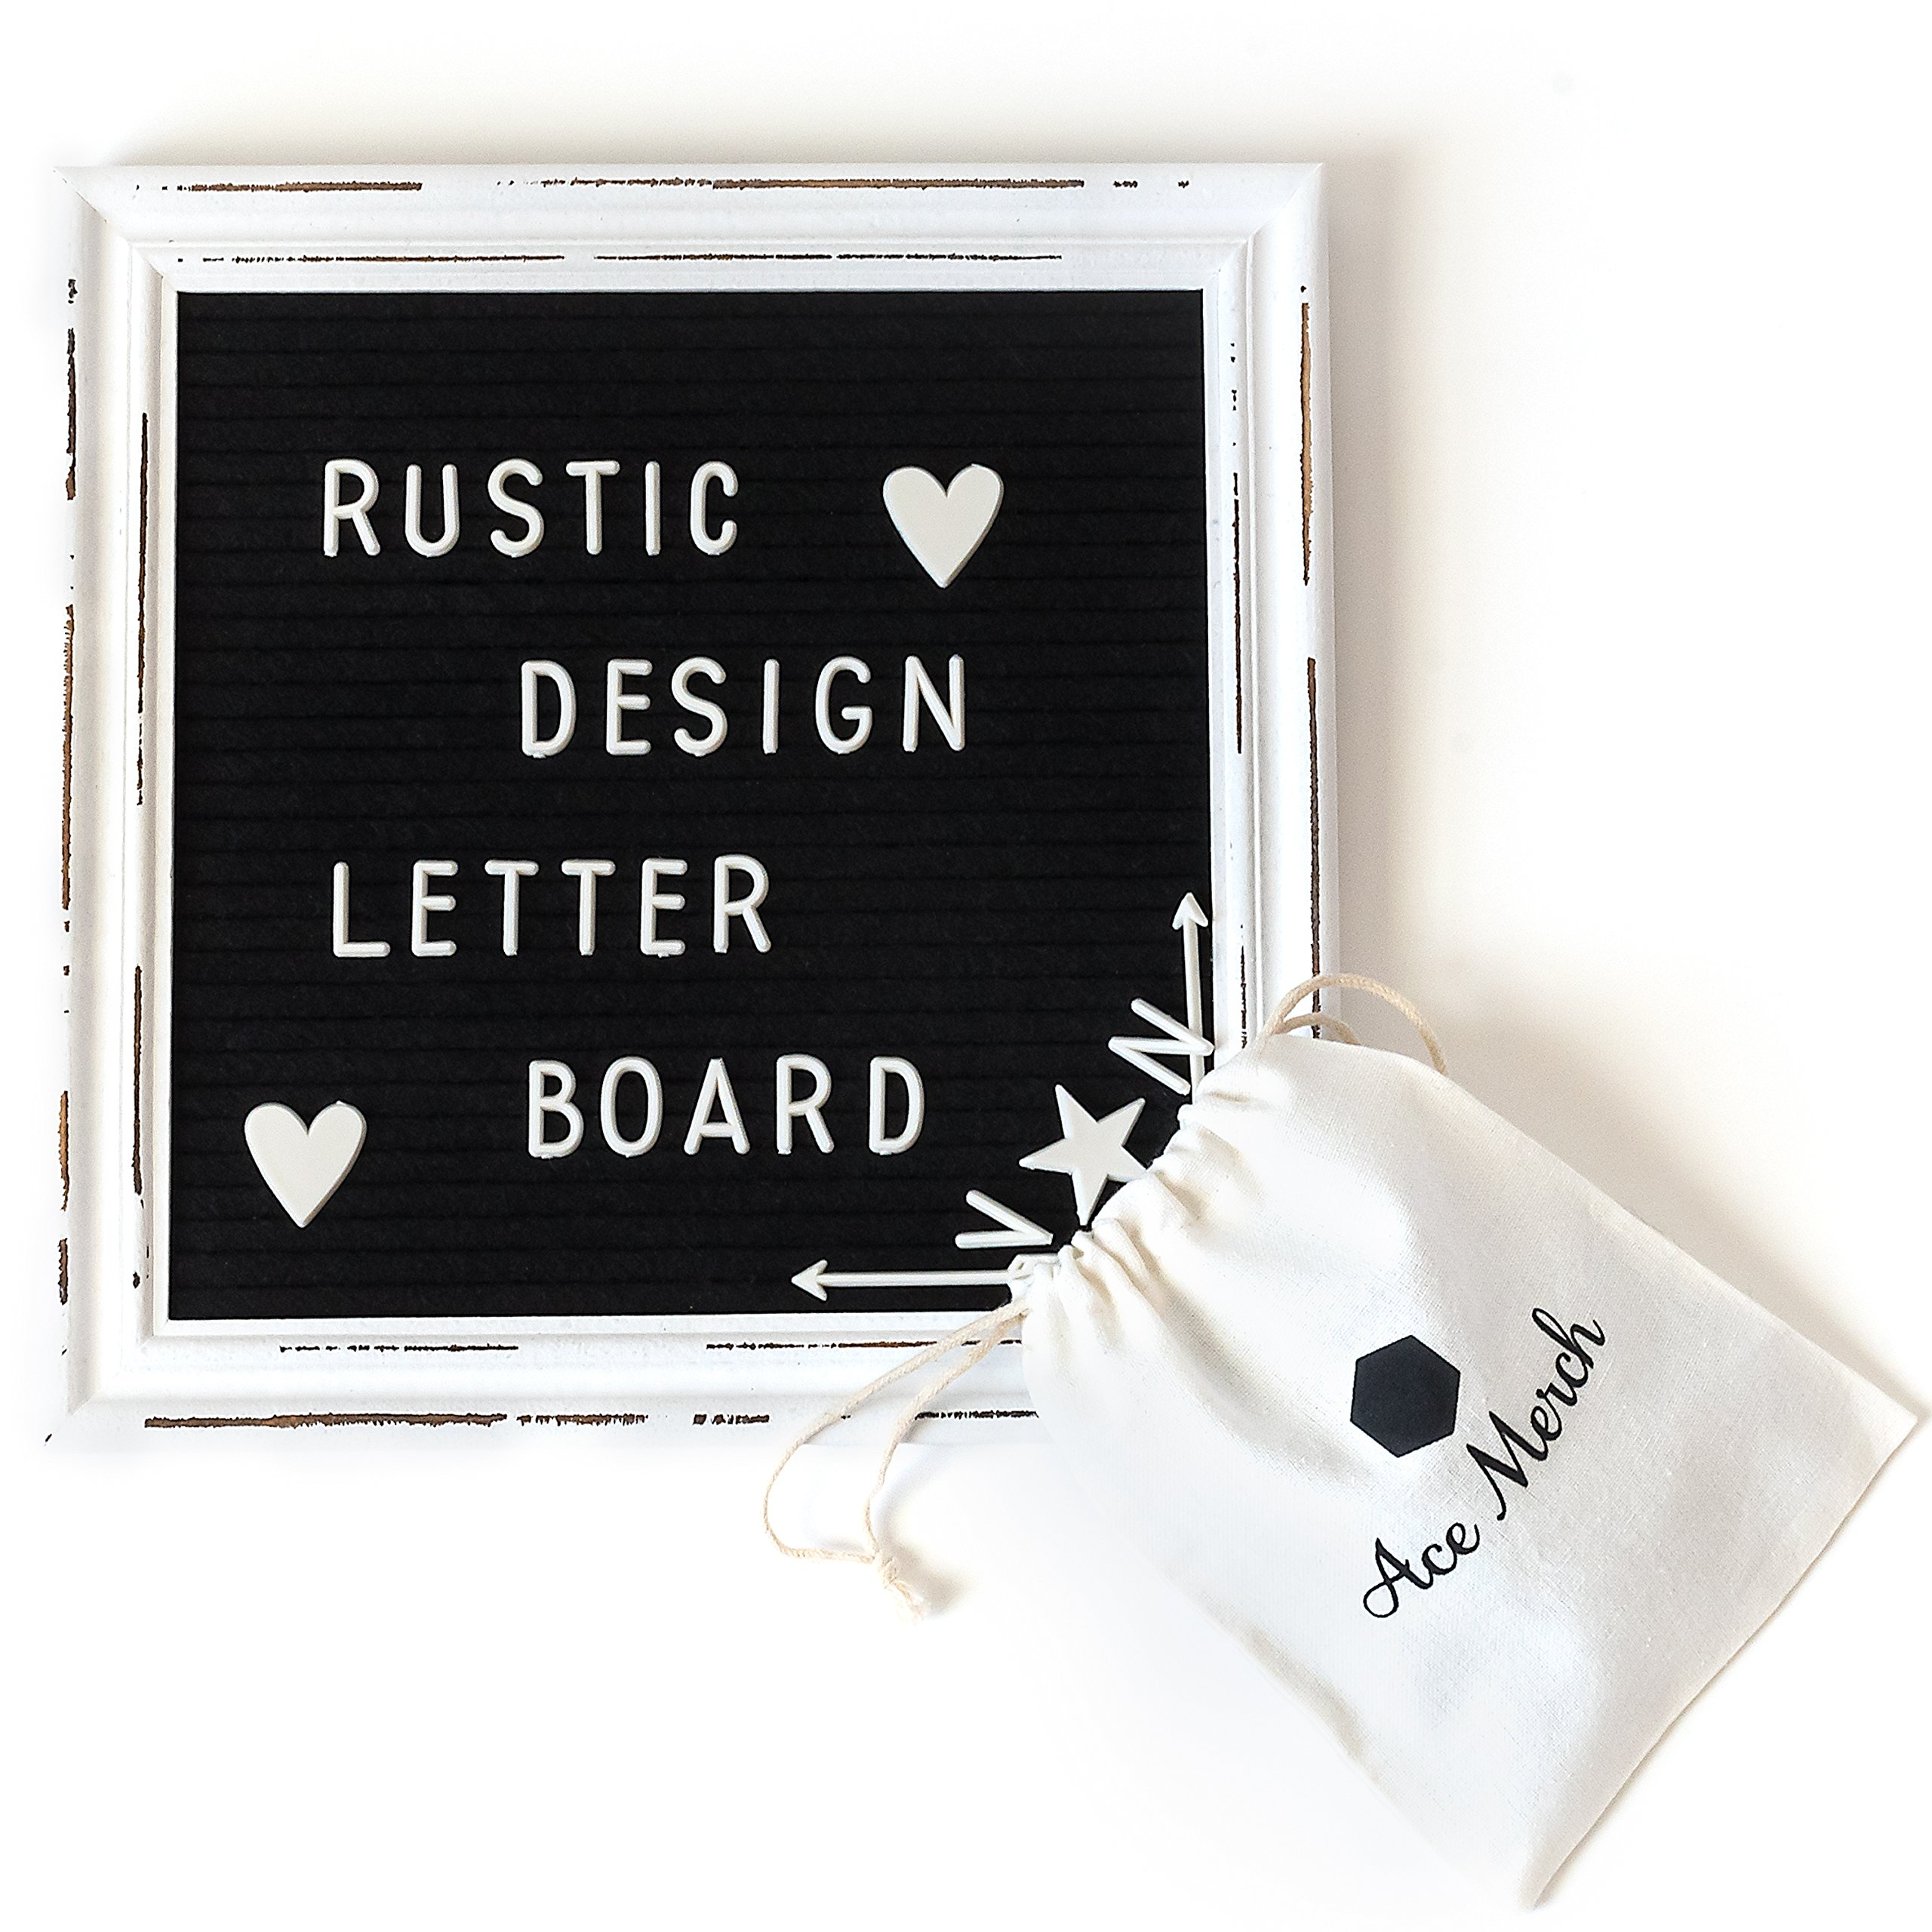 Rustic Black Felt Letter Board with White Wood Vintage Frame – 10x10 Inch Antique Message Board with Wooden Stand, Special Cursive Words and 335 Changeable Letters, Numbers and Emojis by Ace Merch